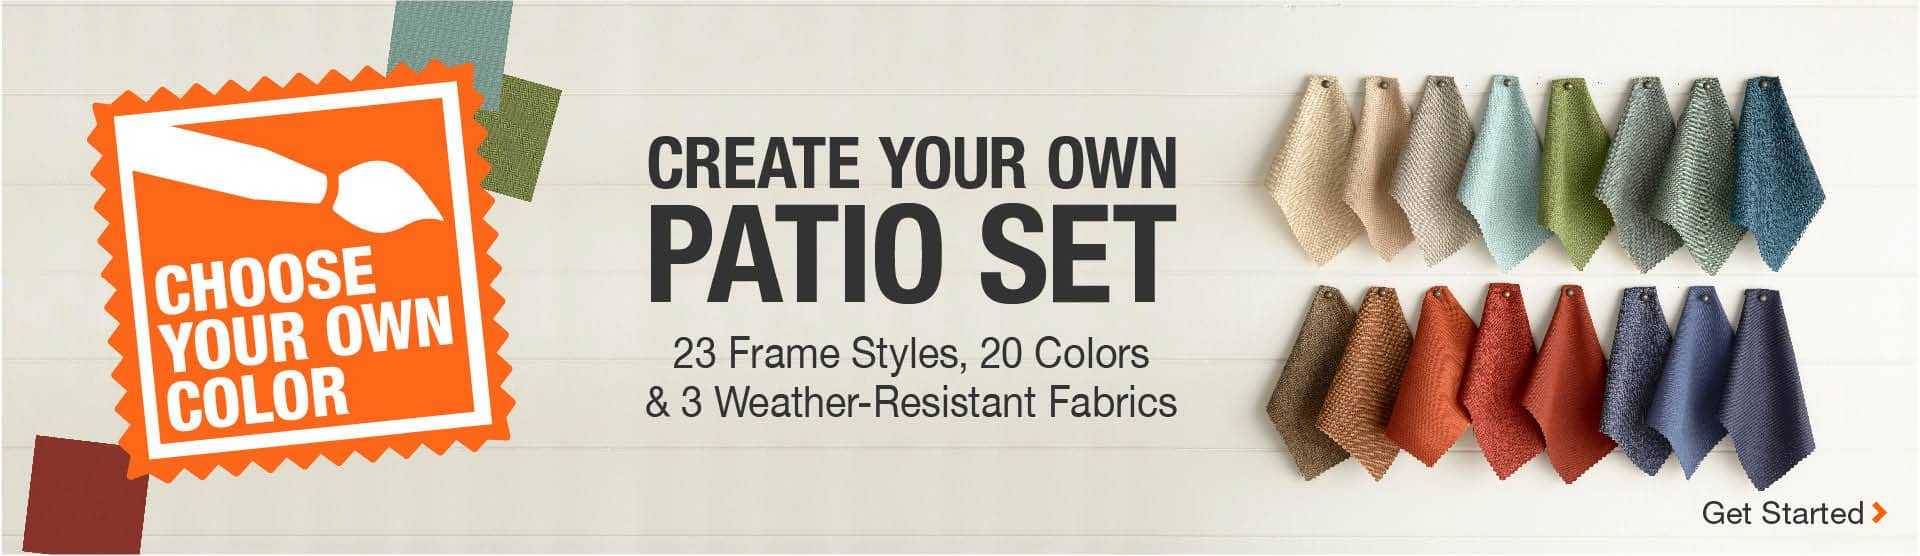 Create Your Own Patio Set